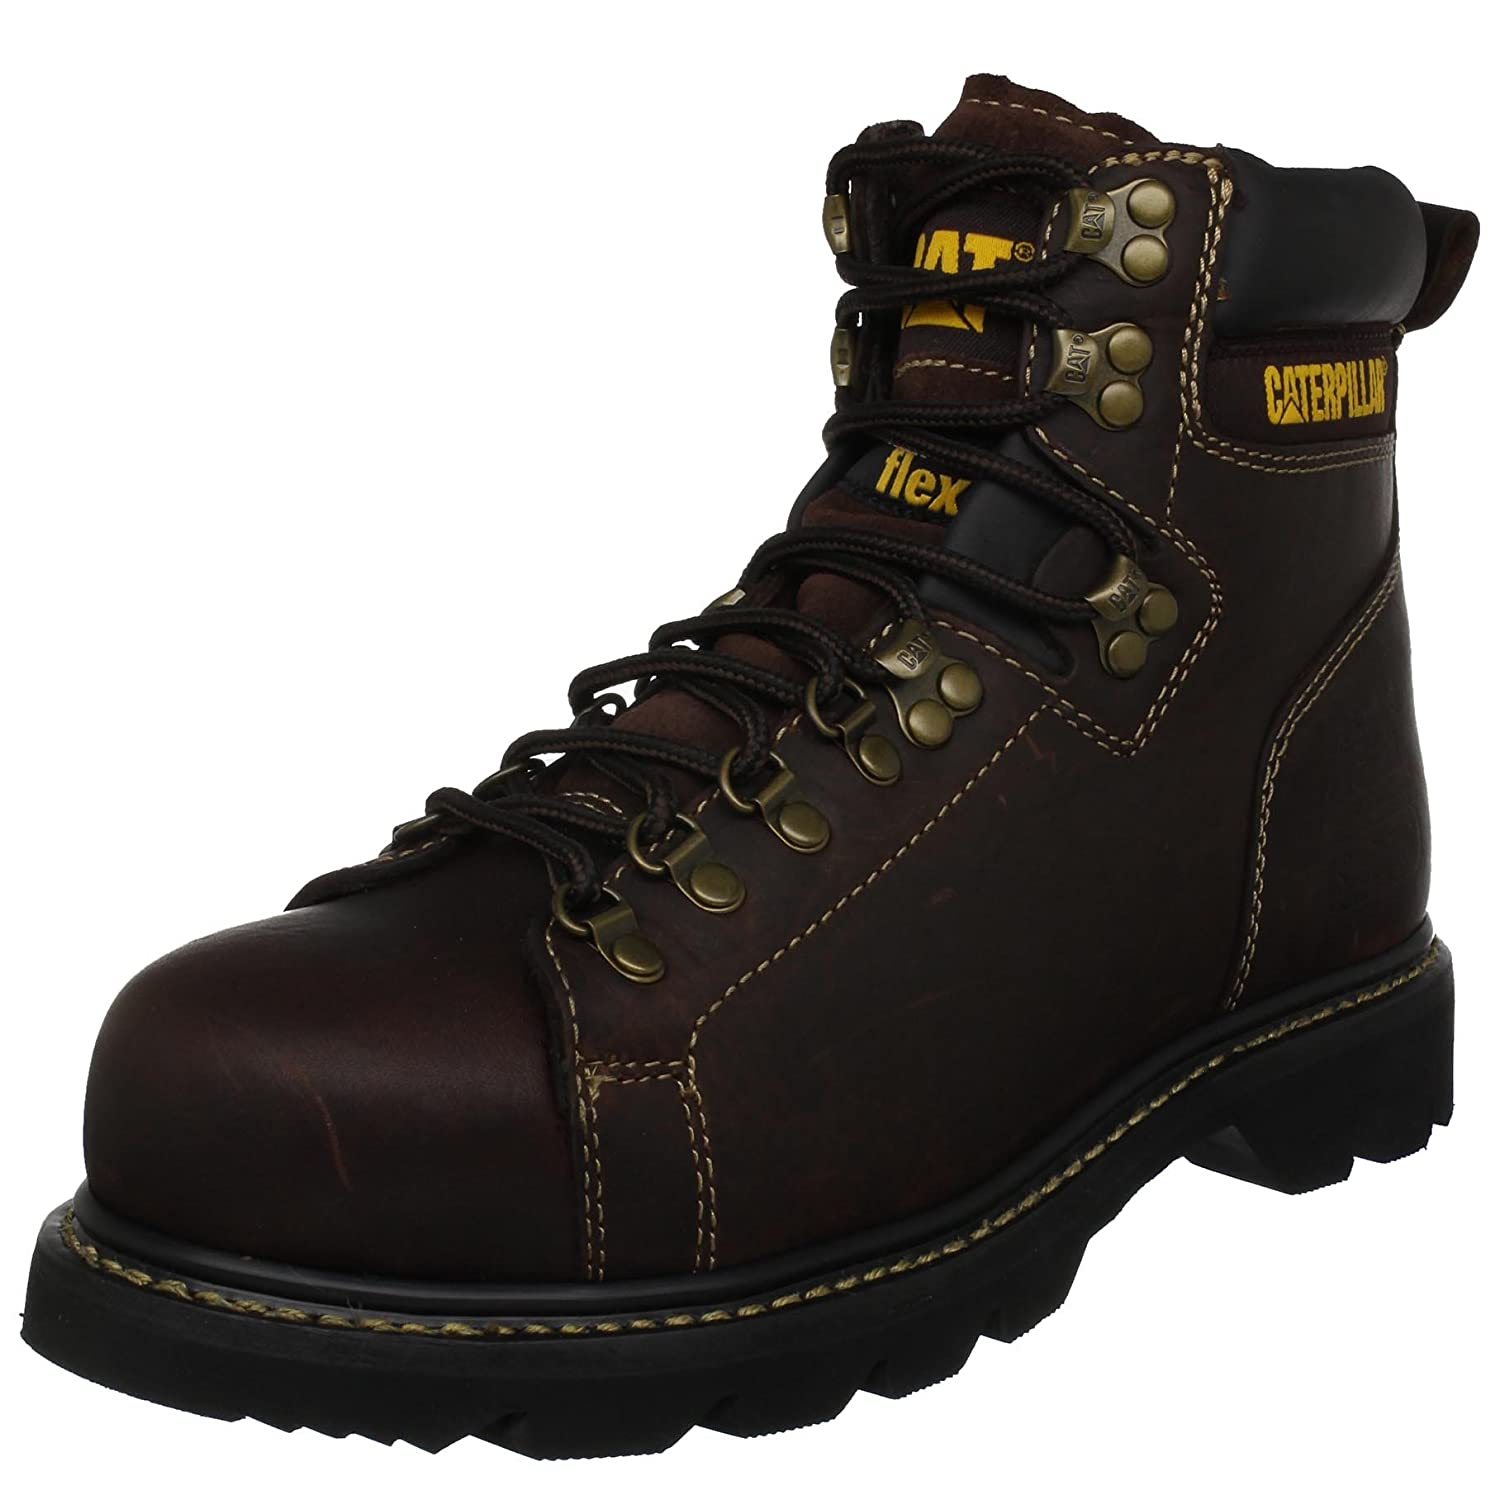 Caterpillar Men's Alaska Lace-Up Steel Toe Boot